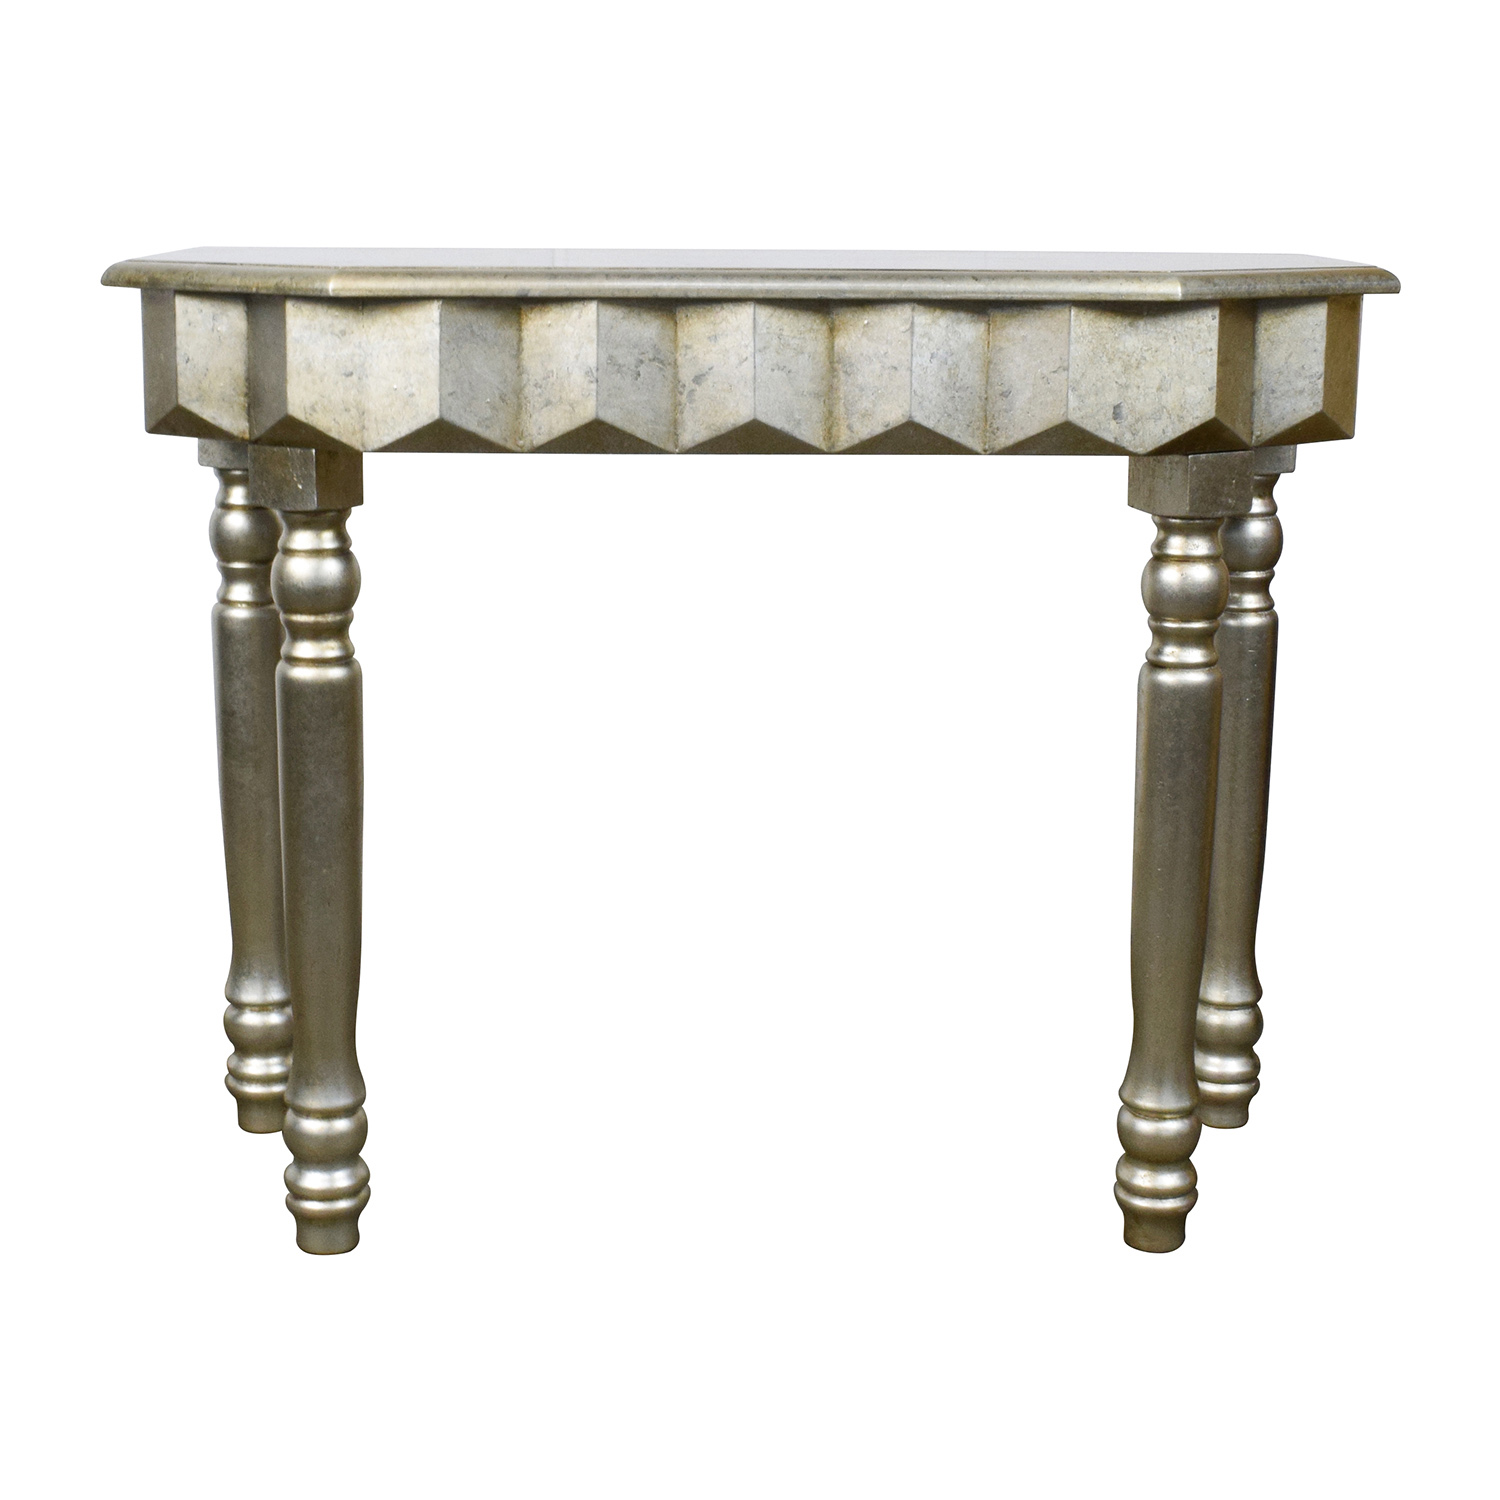 off rustic gold metallic console table tables second hand accent curved patio umbrella behind couch circular cover rose side narrow black end drummer stool with backrest square